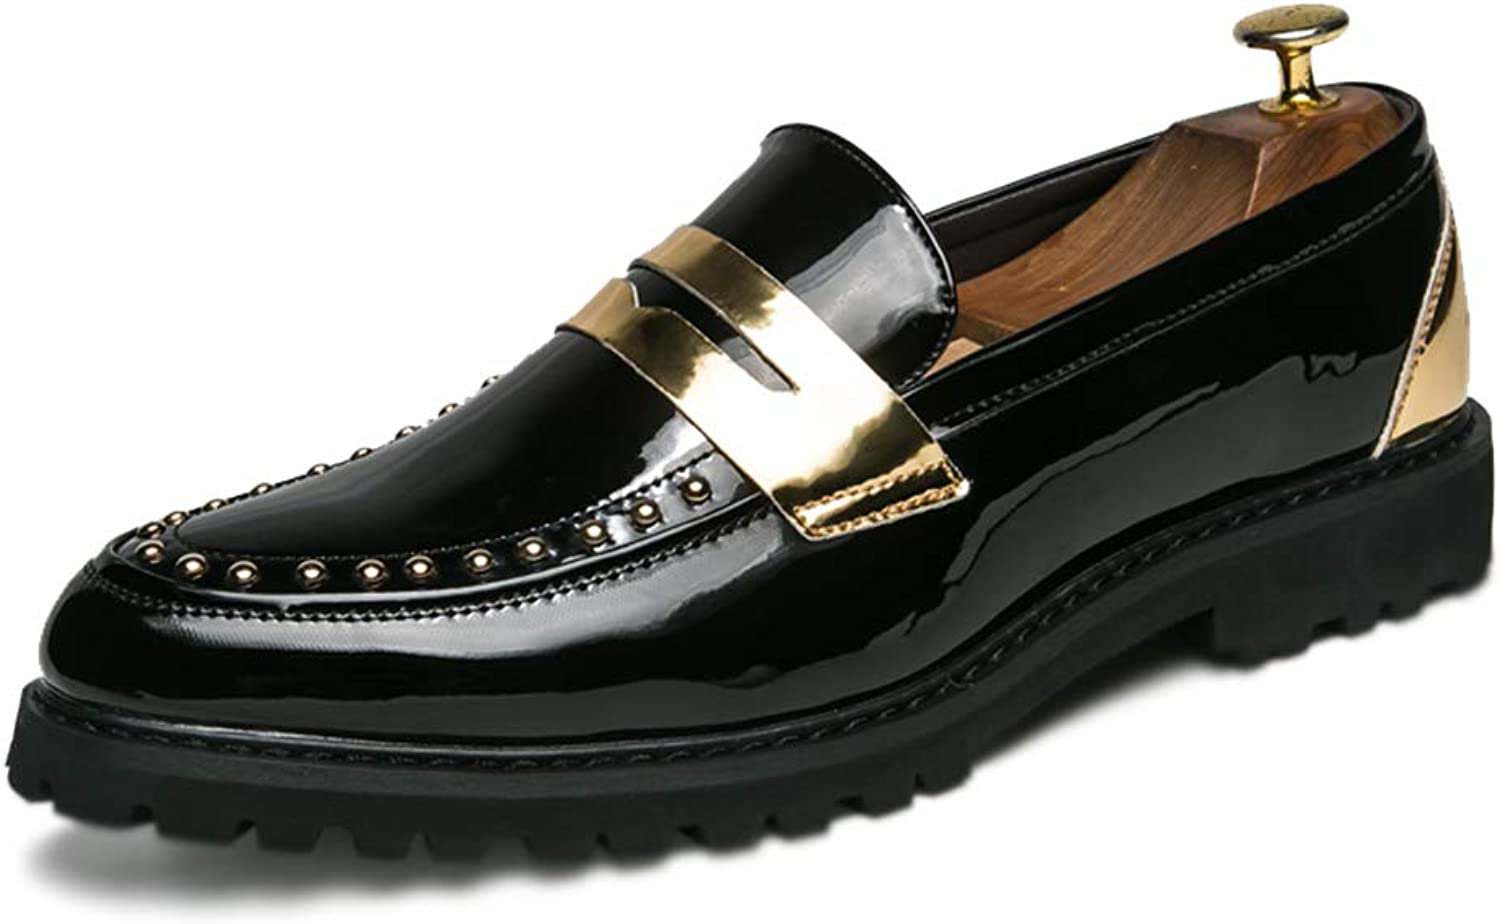 CHENDX Sautope, Moda da Uomo personalità Oxford Casual Comoda Rivetto Slip On Sautope Formali in Vernice (Coloree   Nero, Dimensione   40 EU)